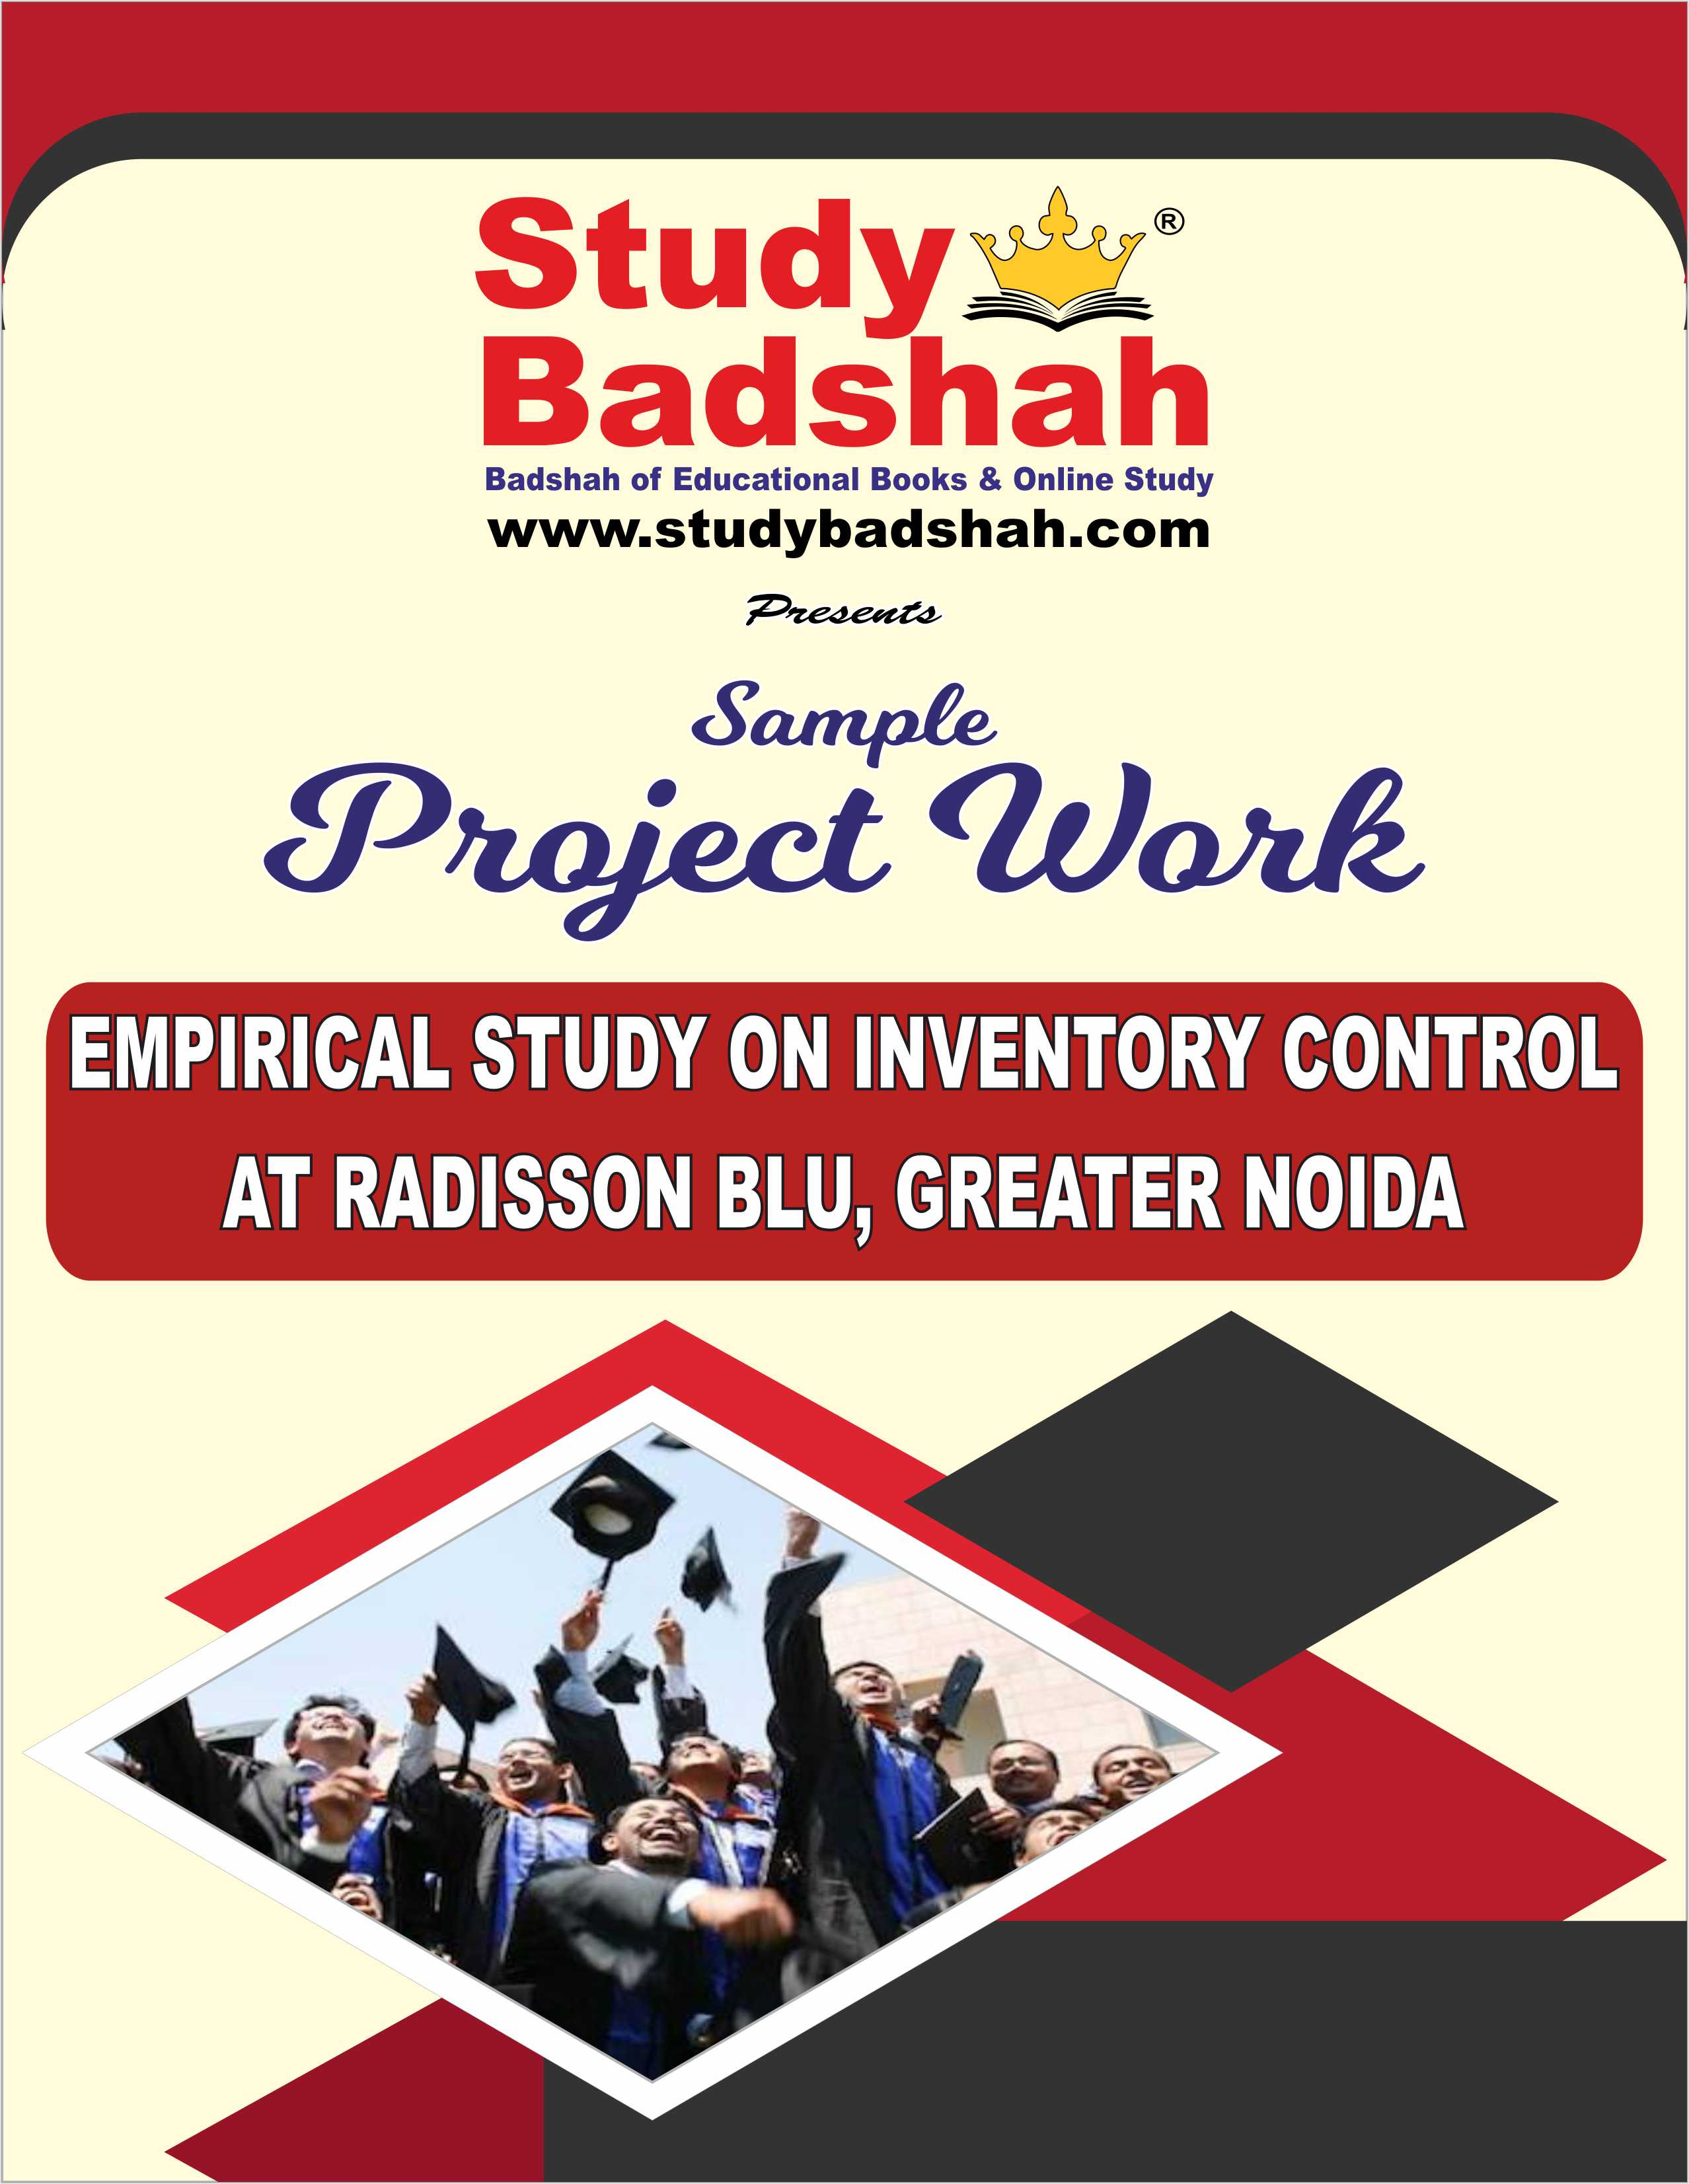 EMPIRICAL STUDY ON INVENTORY CONTROL AT RADISSON BLU, GREATER NOIDA OP